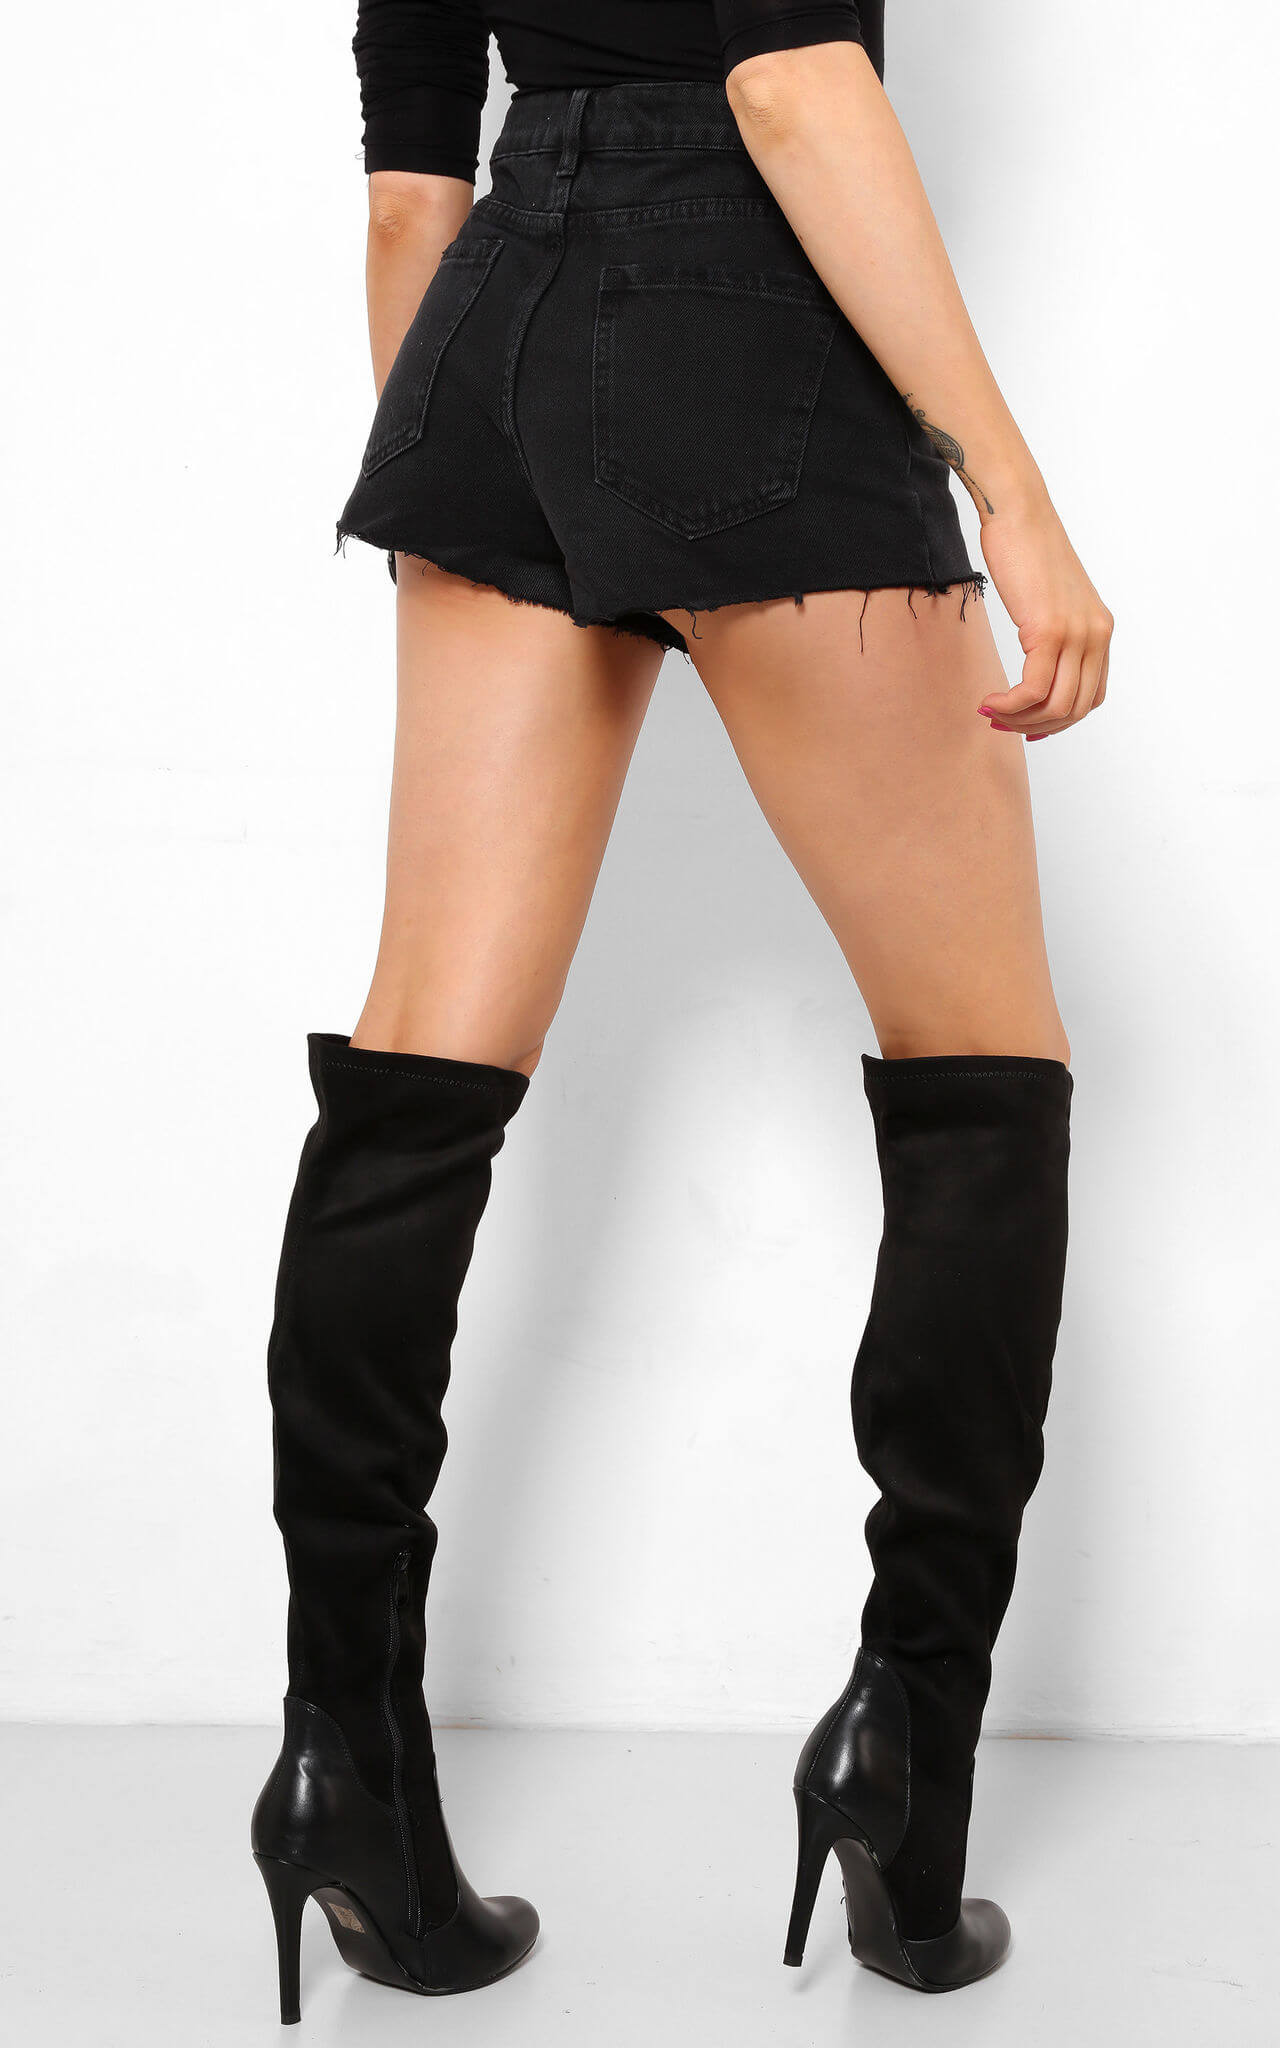 Model wears black suedette over the knee boots with stiletto heel